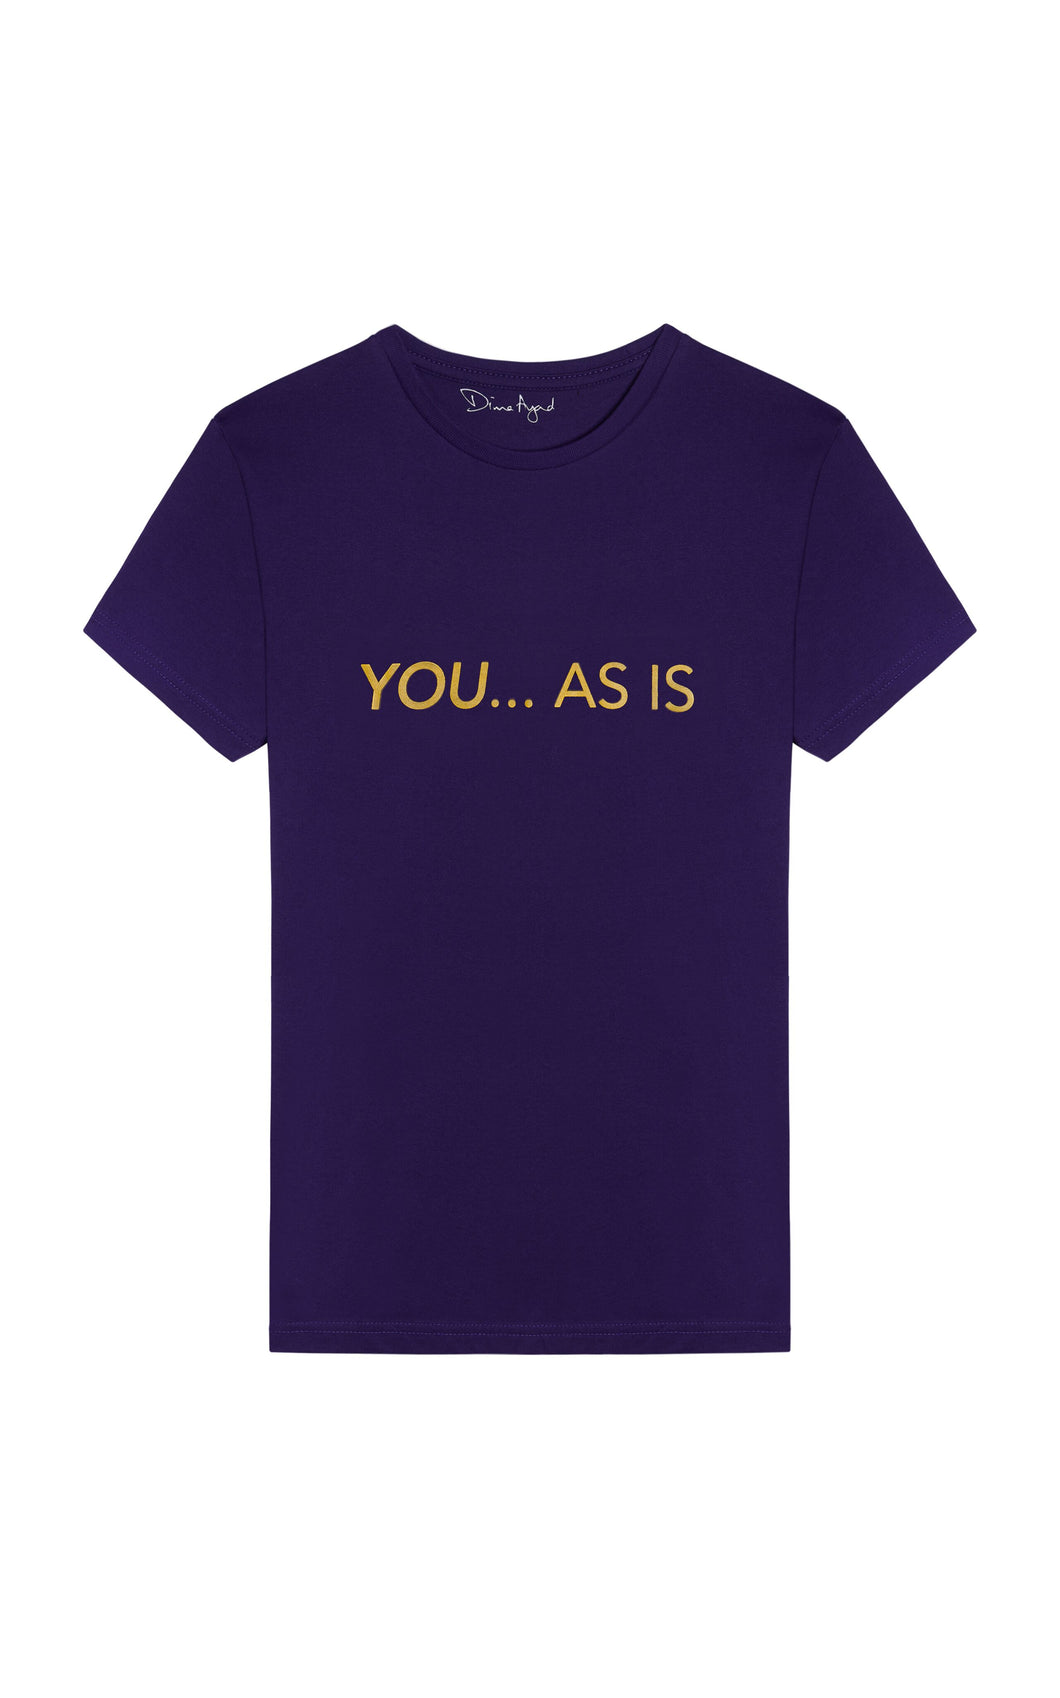 YOU...AS IS Purple T-shirt with Gold Text, English